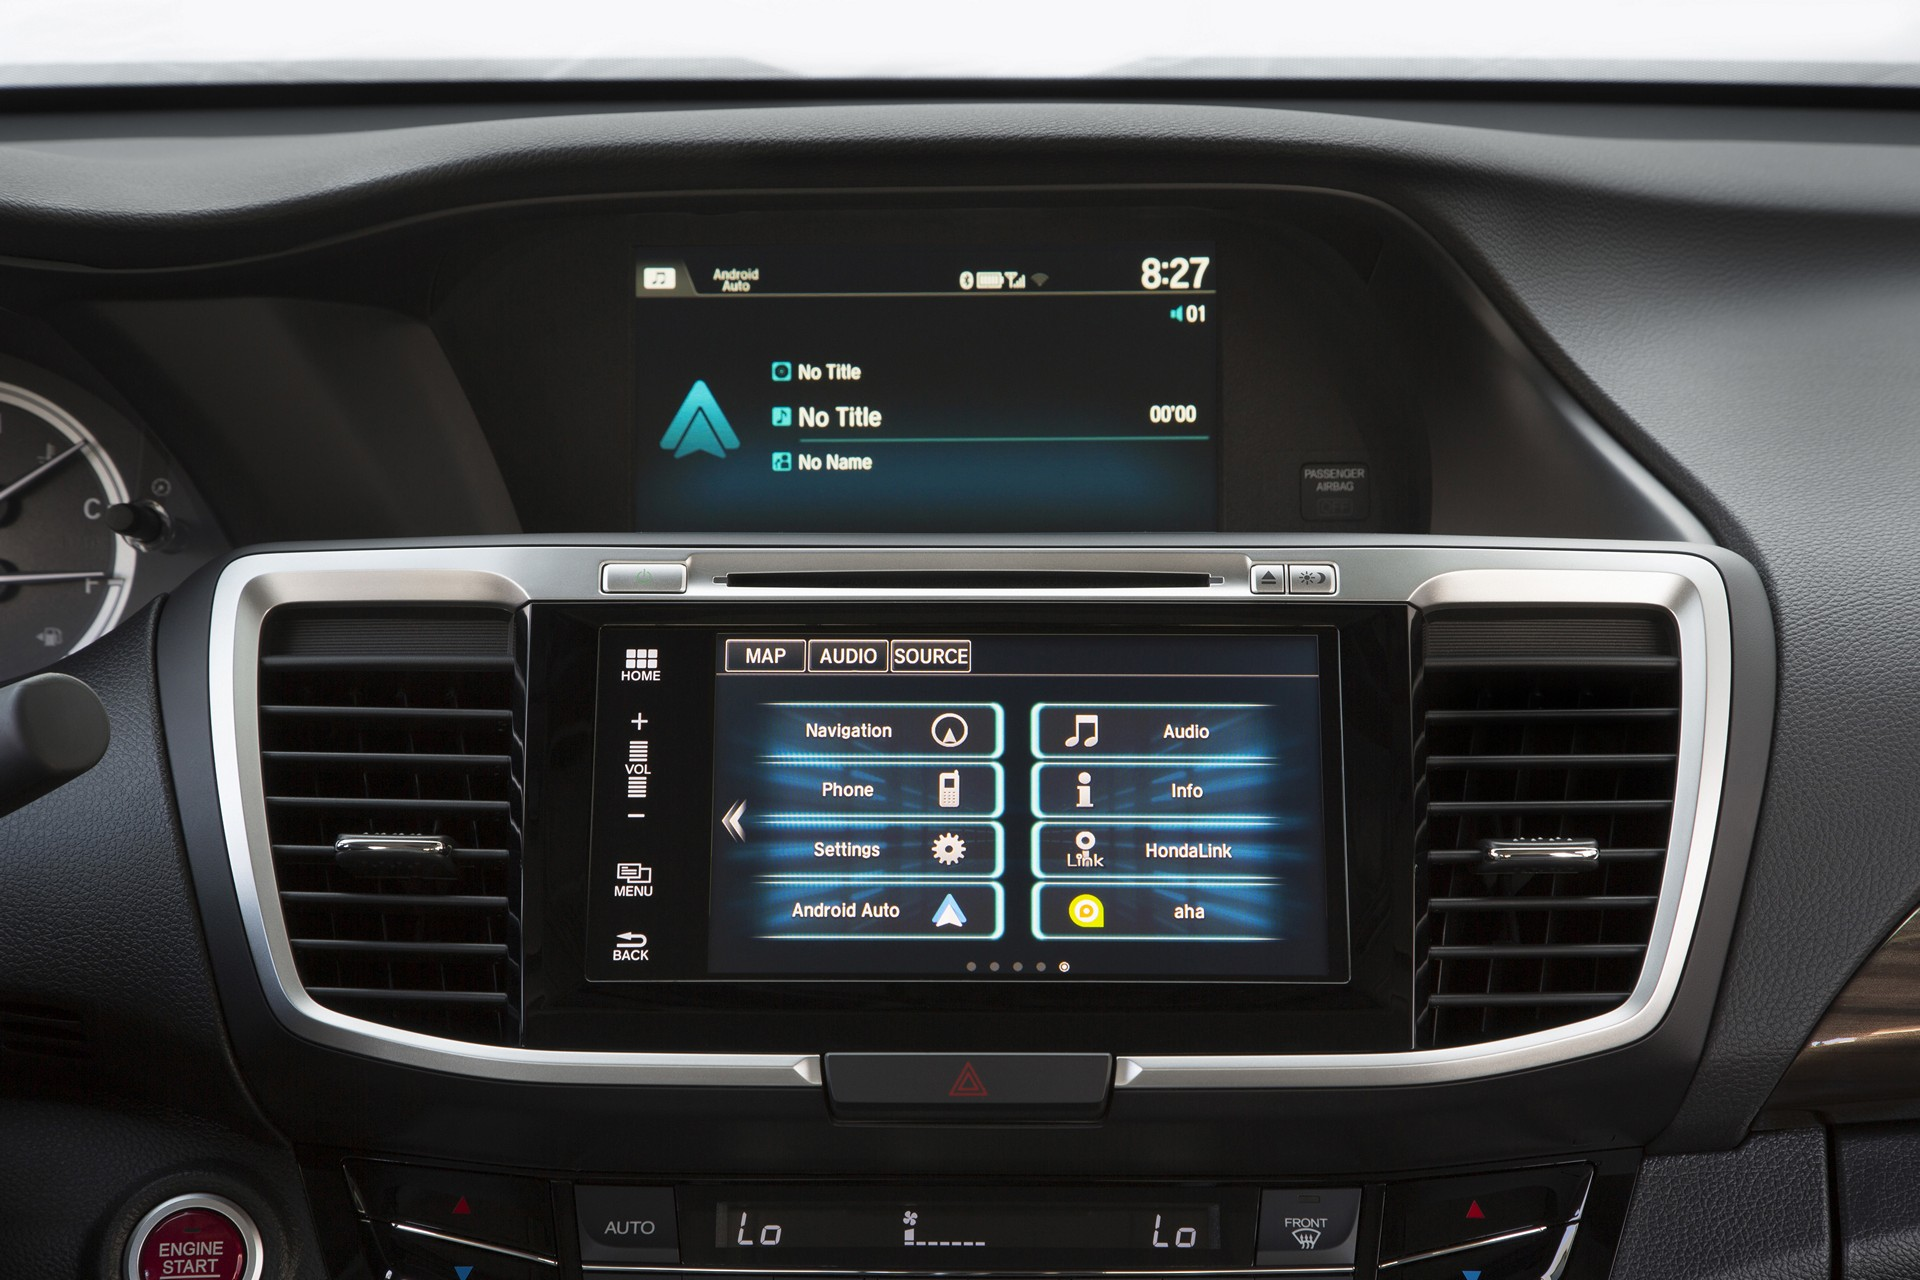 2016 Honda Accord with Android Auto © Honda Motor Co., Ltd.